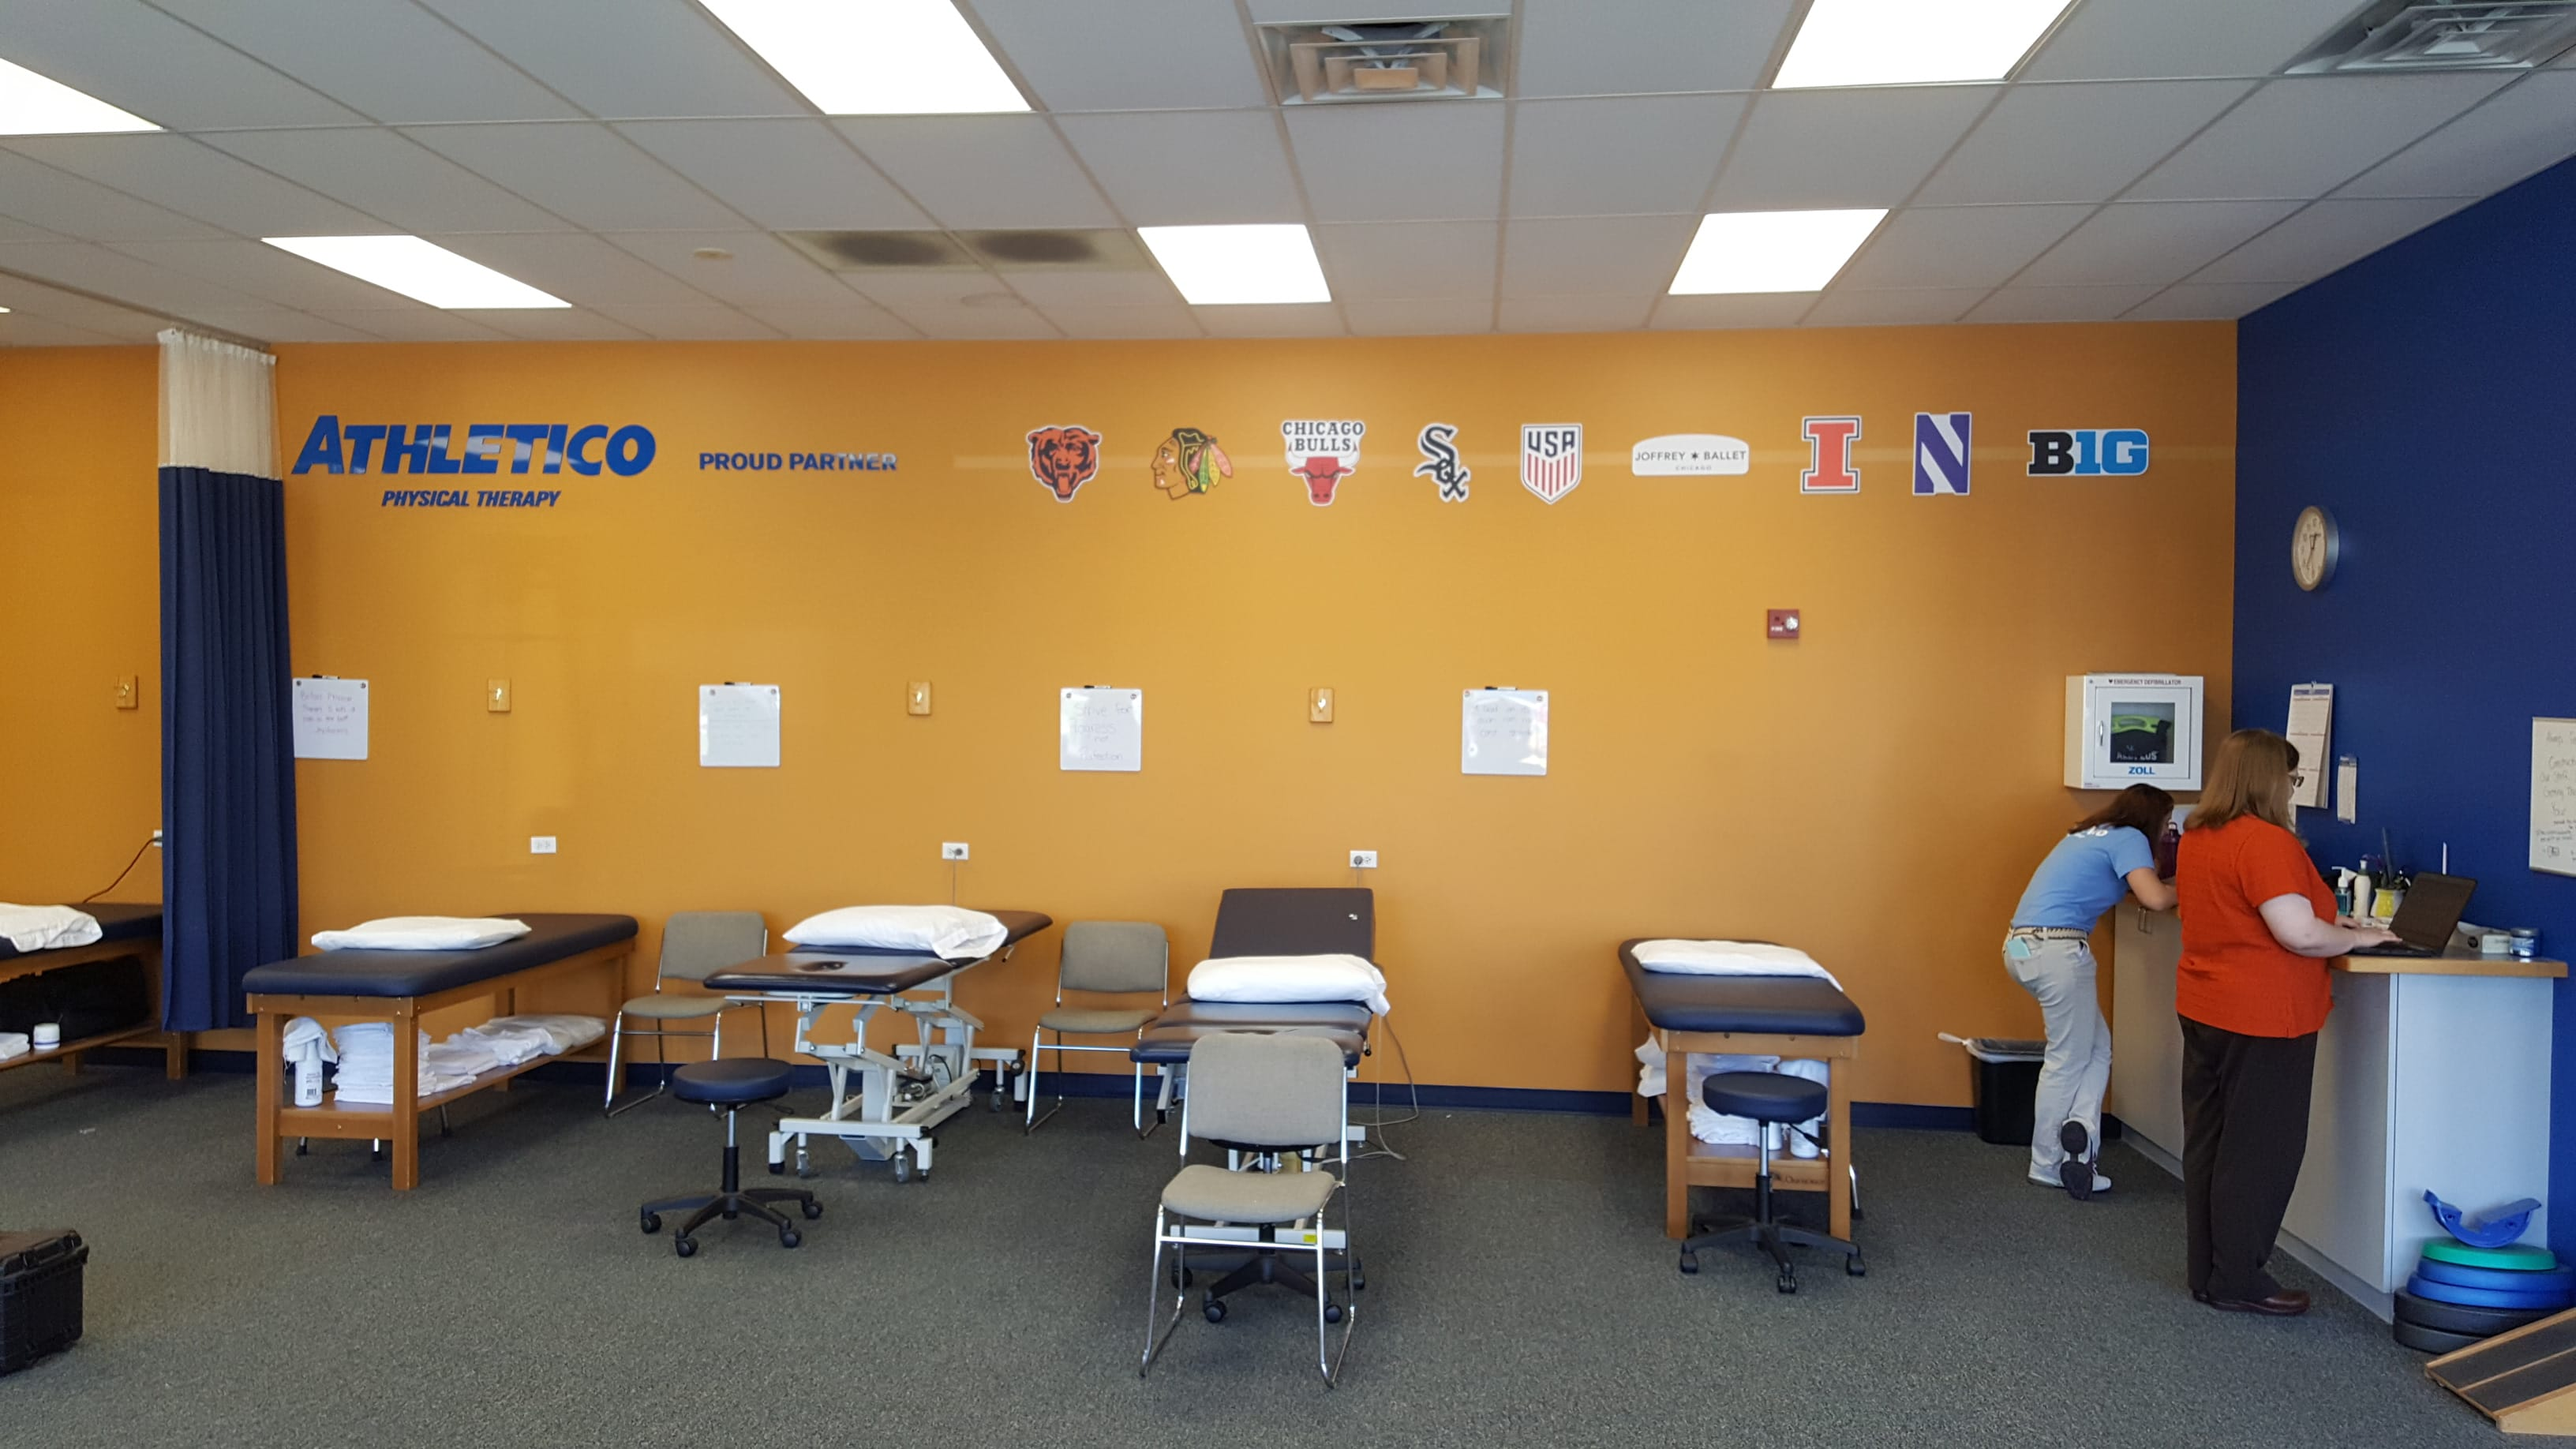 Physical Therapy Third Lake - Athletico Gurnee West (Third Lake)